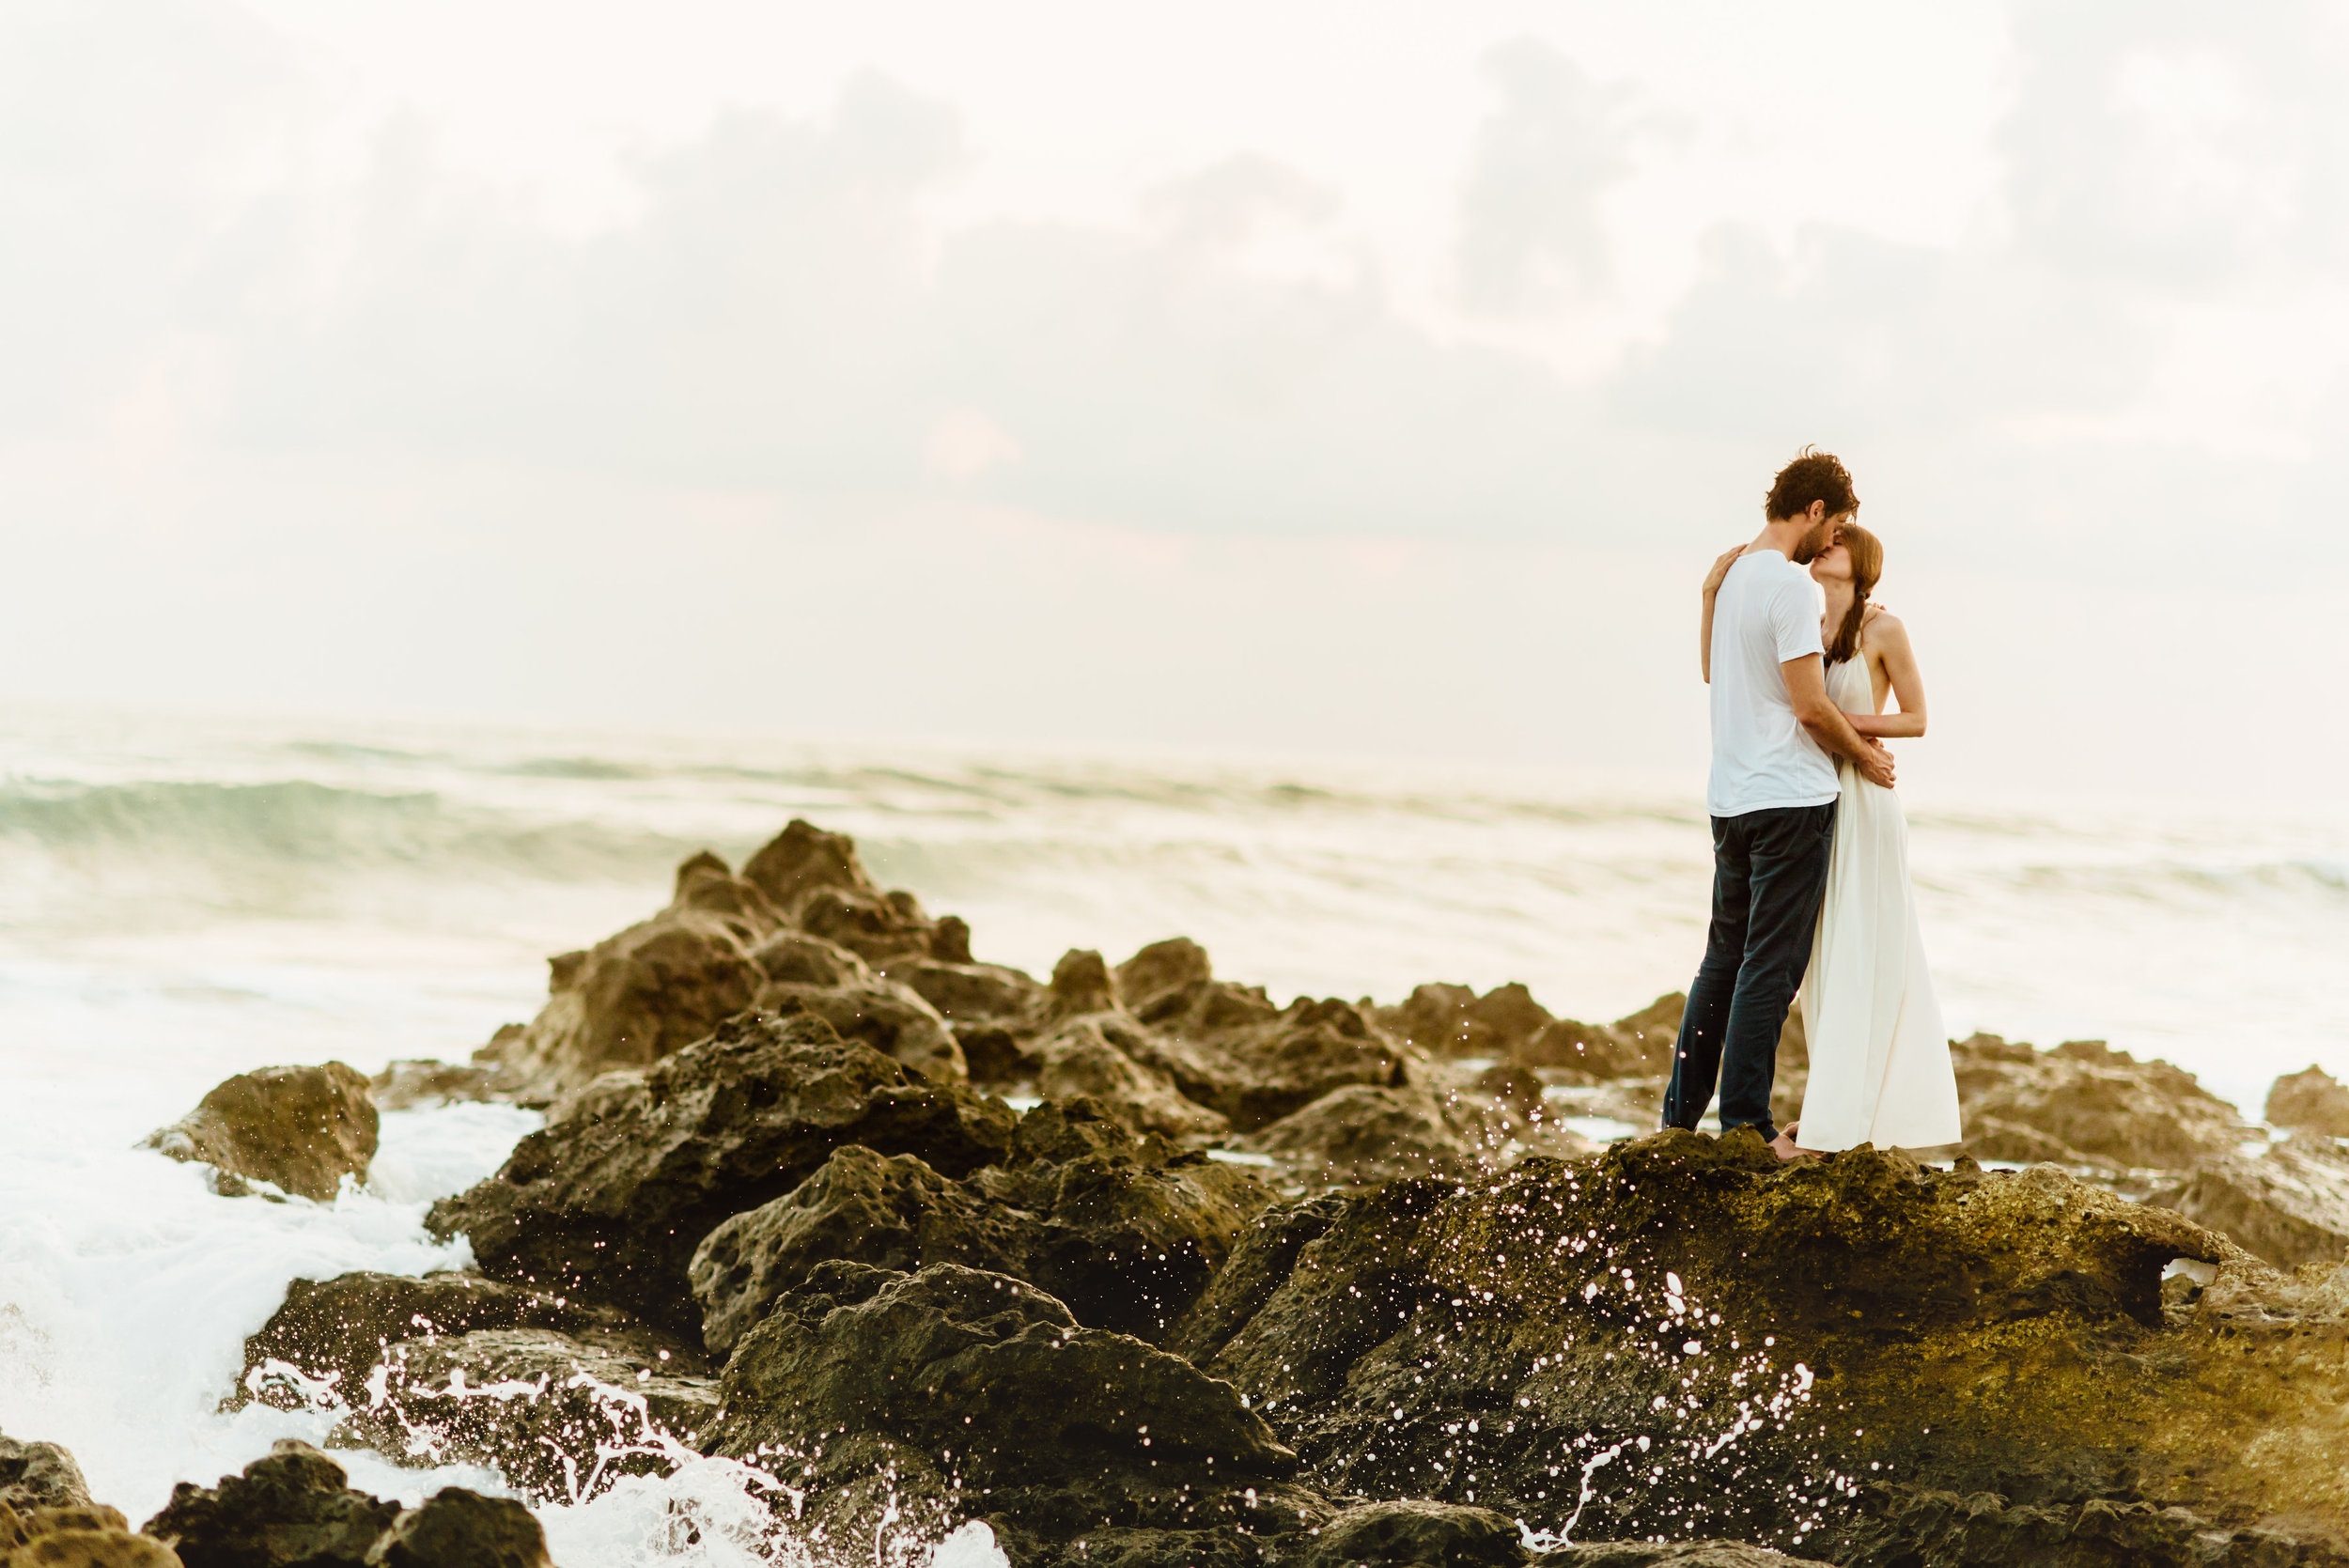 Not sure it gets any more romantic than this... newly weds celebrating their marriage on a rocky beach on the Nicoya Peninsula in Costa Rica! Santa Teresa Beach might just be the perfect destination elopement location!  Costa Rica wedding photography by destination wedding photographer, Maddie Mae.